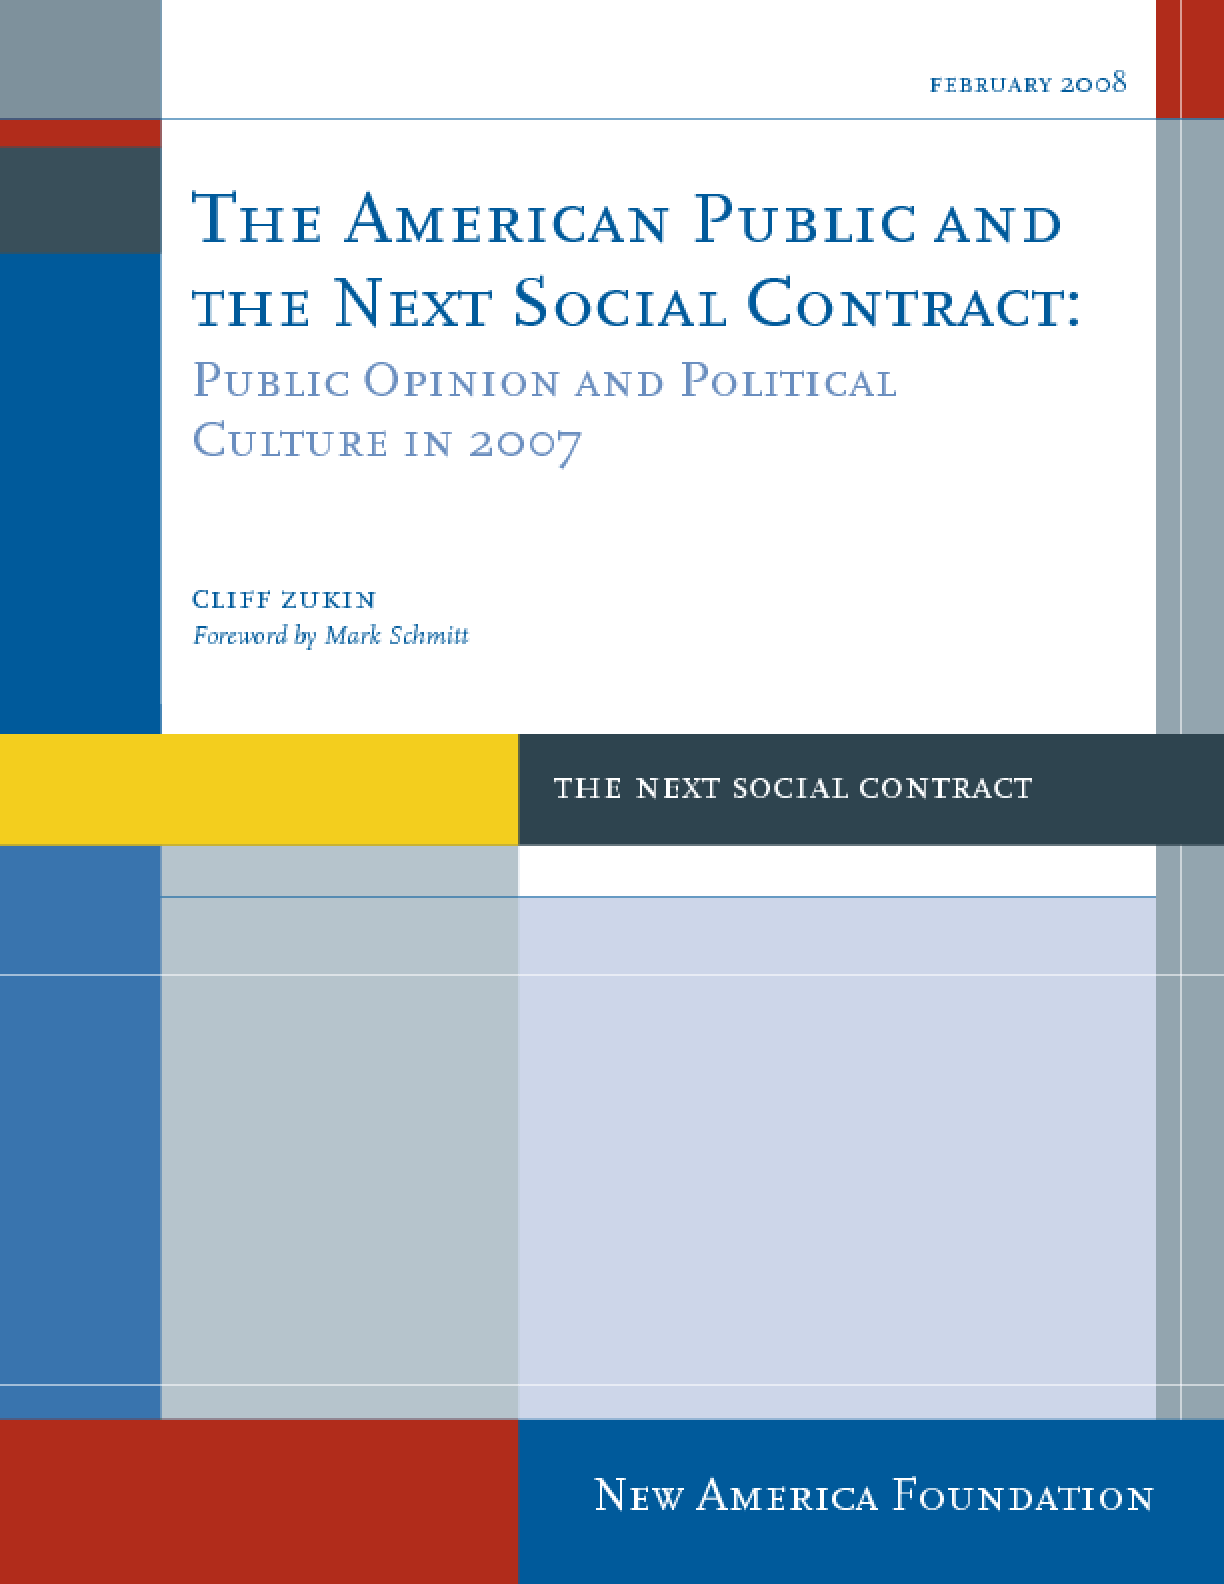 The American Public and the Next Social Contract: Public Opinion and Political Culture in 2007